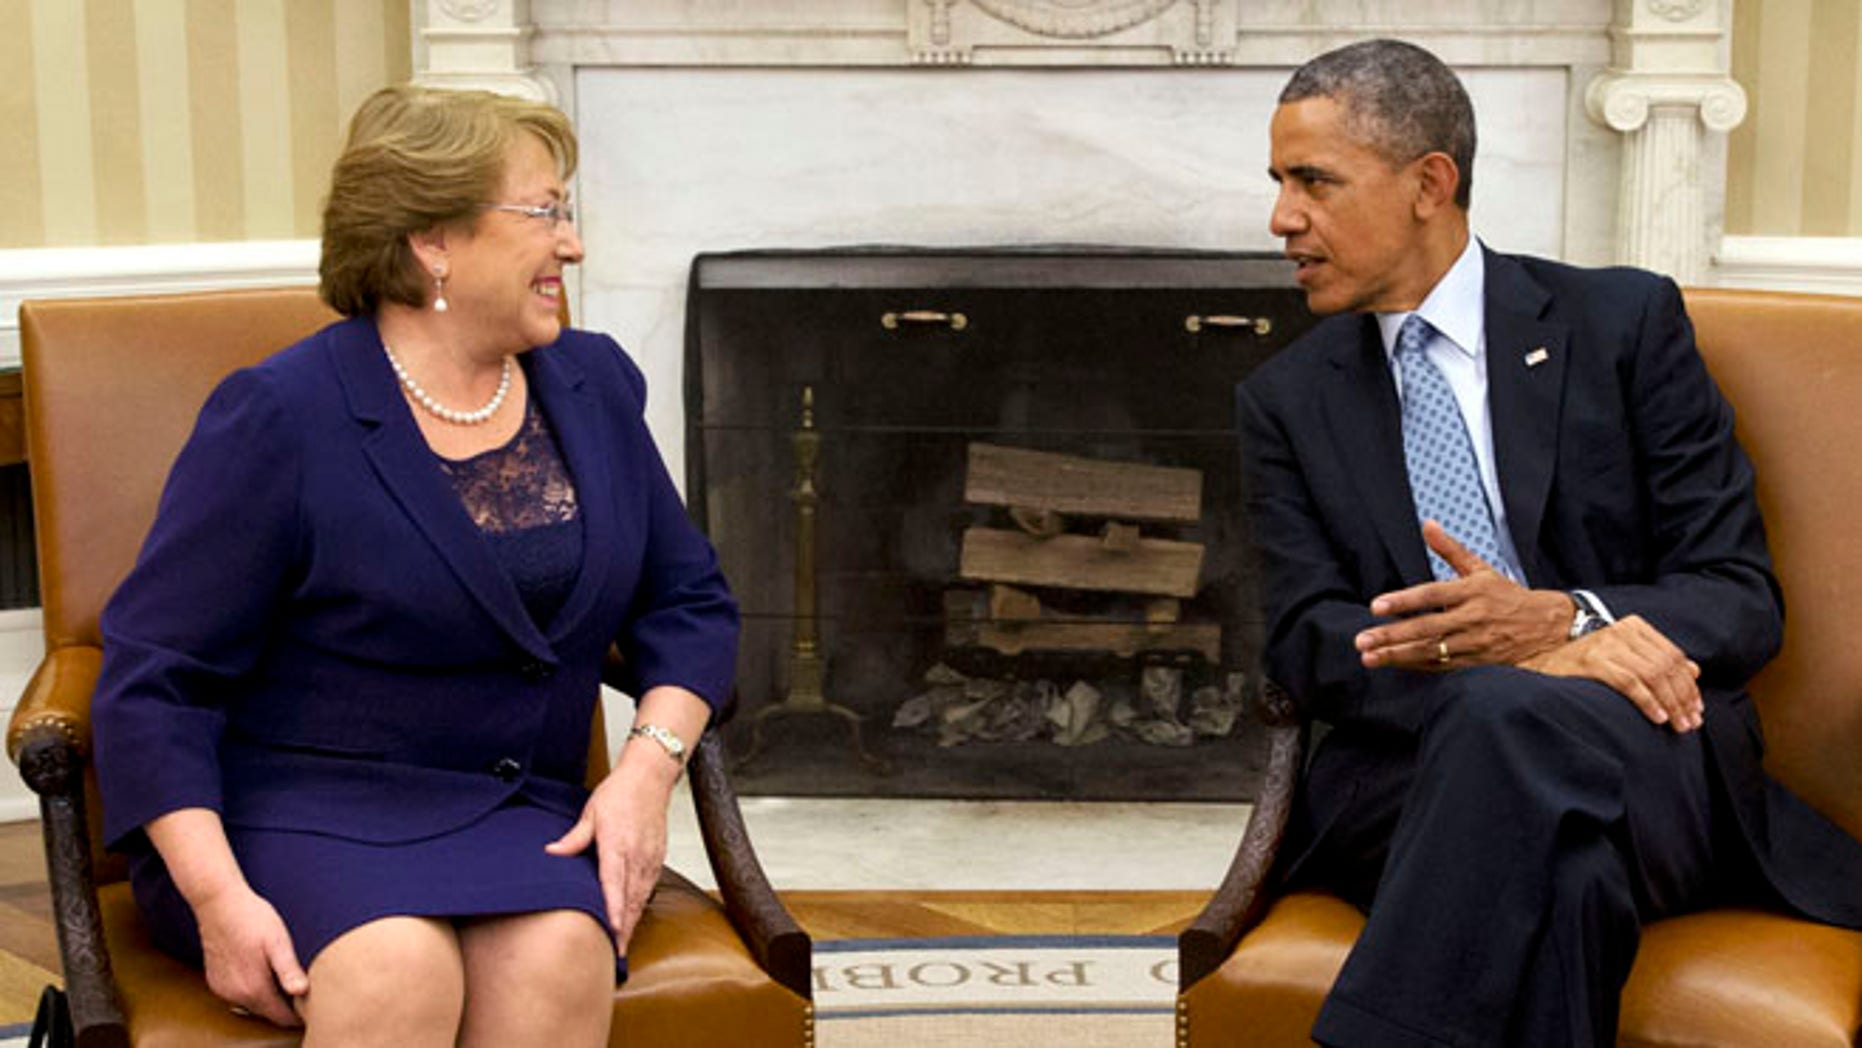 President Barack Obama meets with Chile's President Michelle Bachelet, Monday, June 30, 2014, in the Oval Office of the White House in Washington. (AP Photo/Jacquelyn Martin)